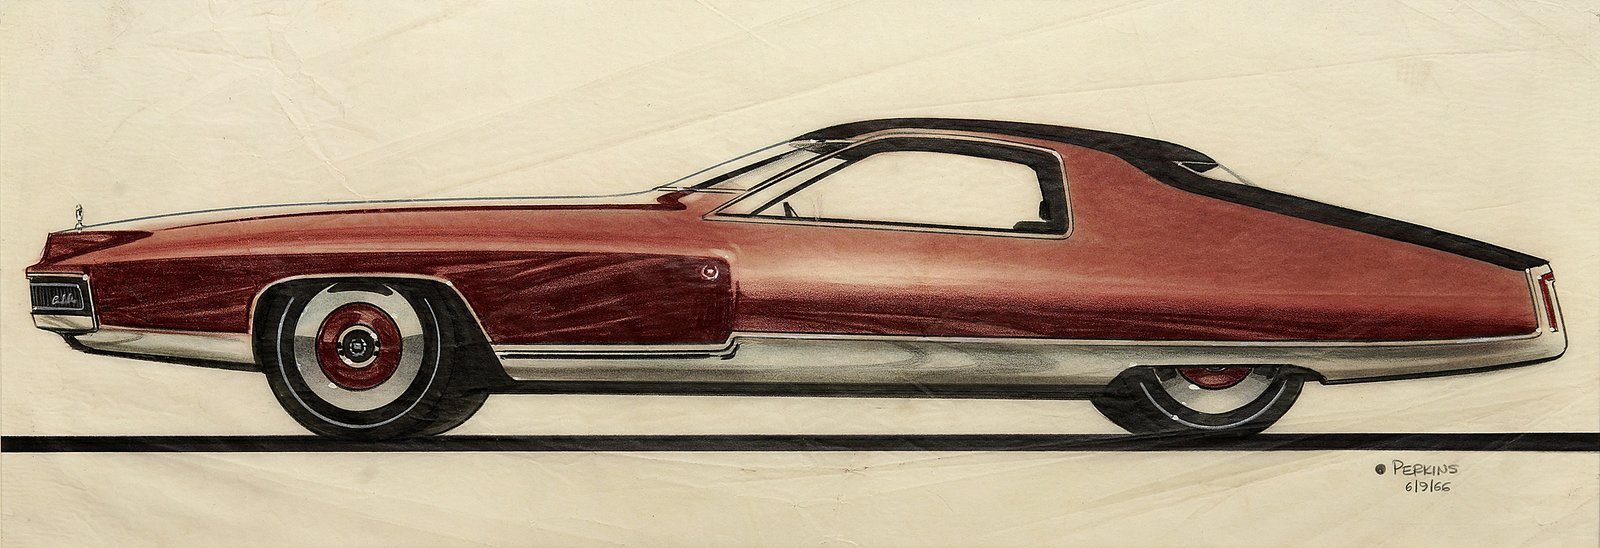 When the Future Had Fins: Fantastical Vintage Auto Drawings - Dwell